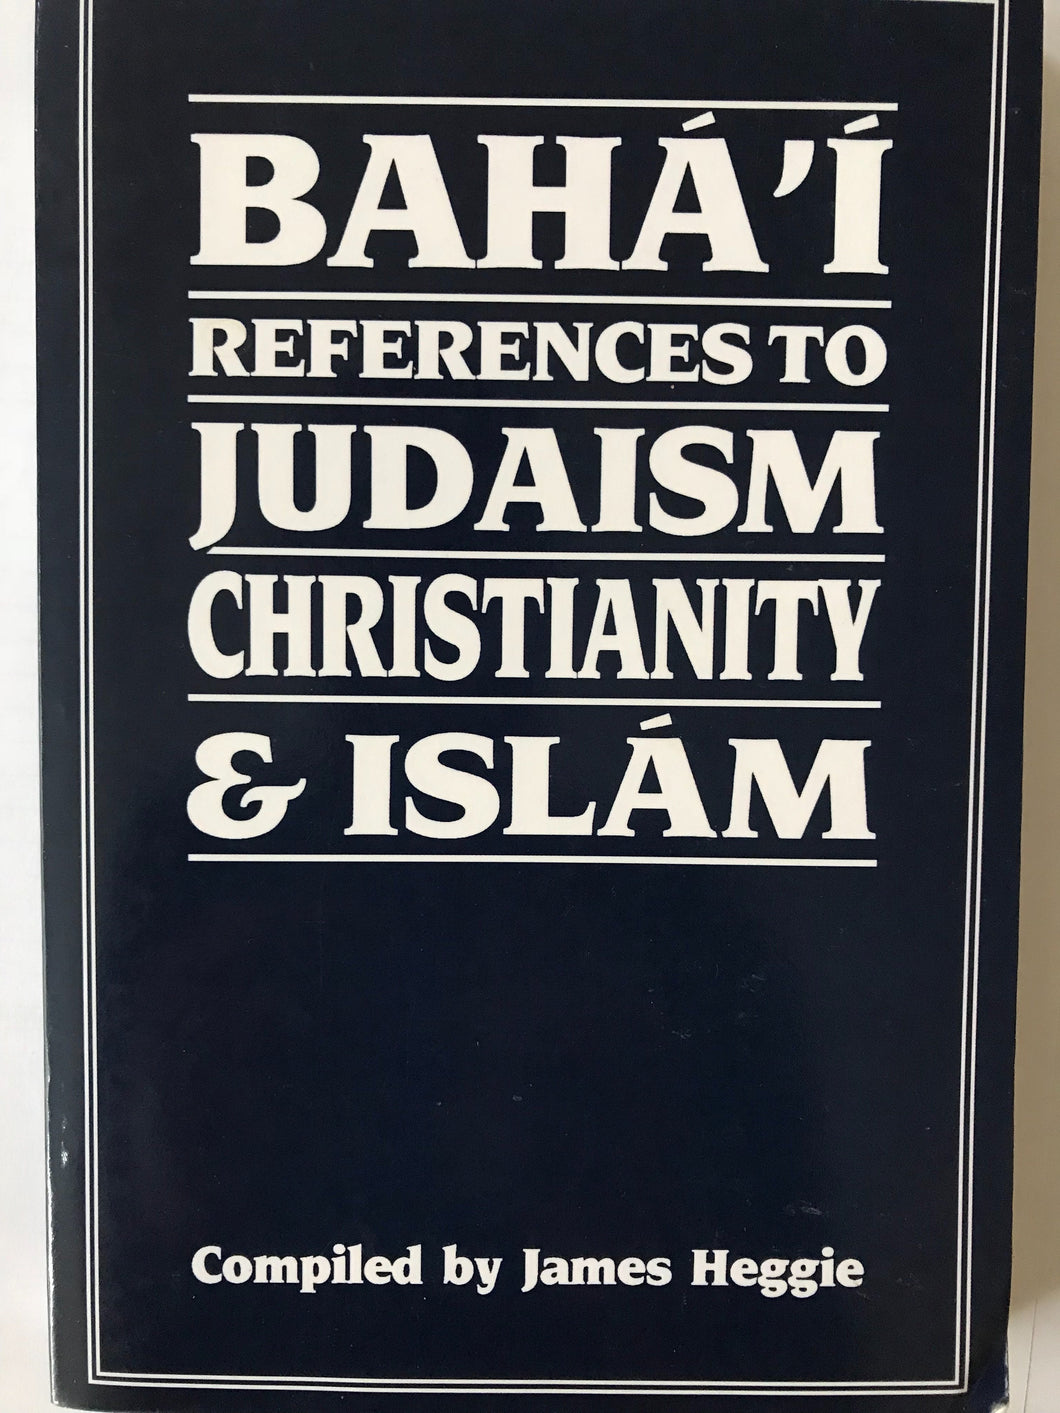 Bahai References to Judaism, Christianity and Islam